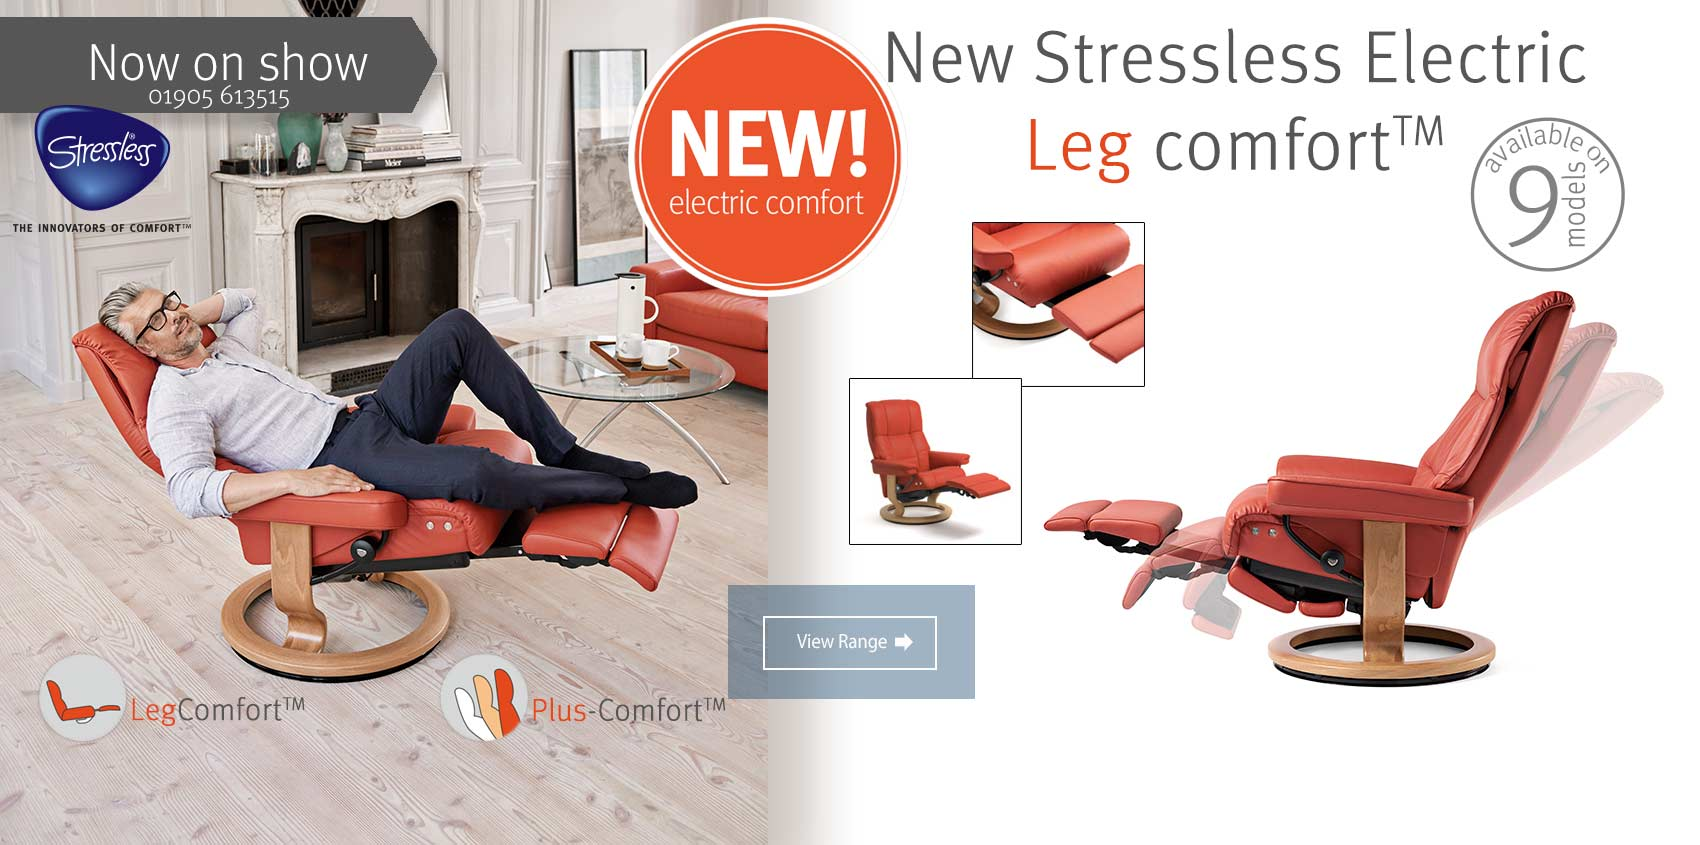 New Stressless recline feature